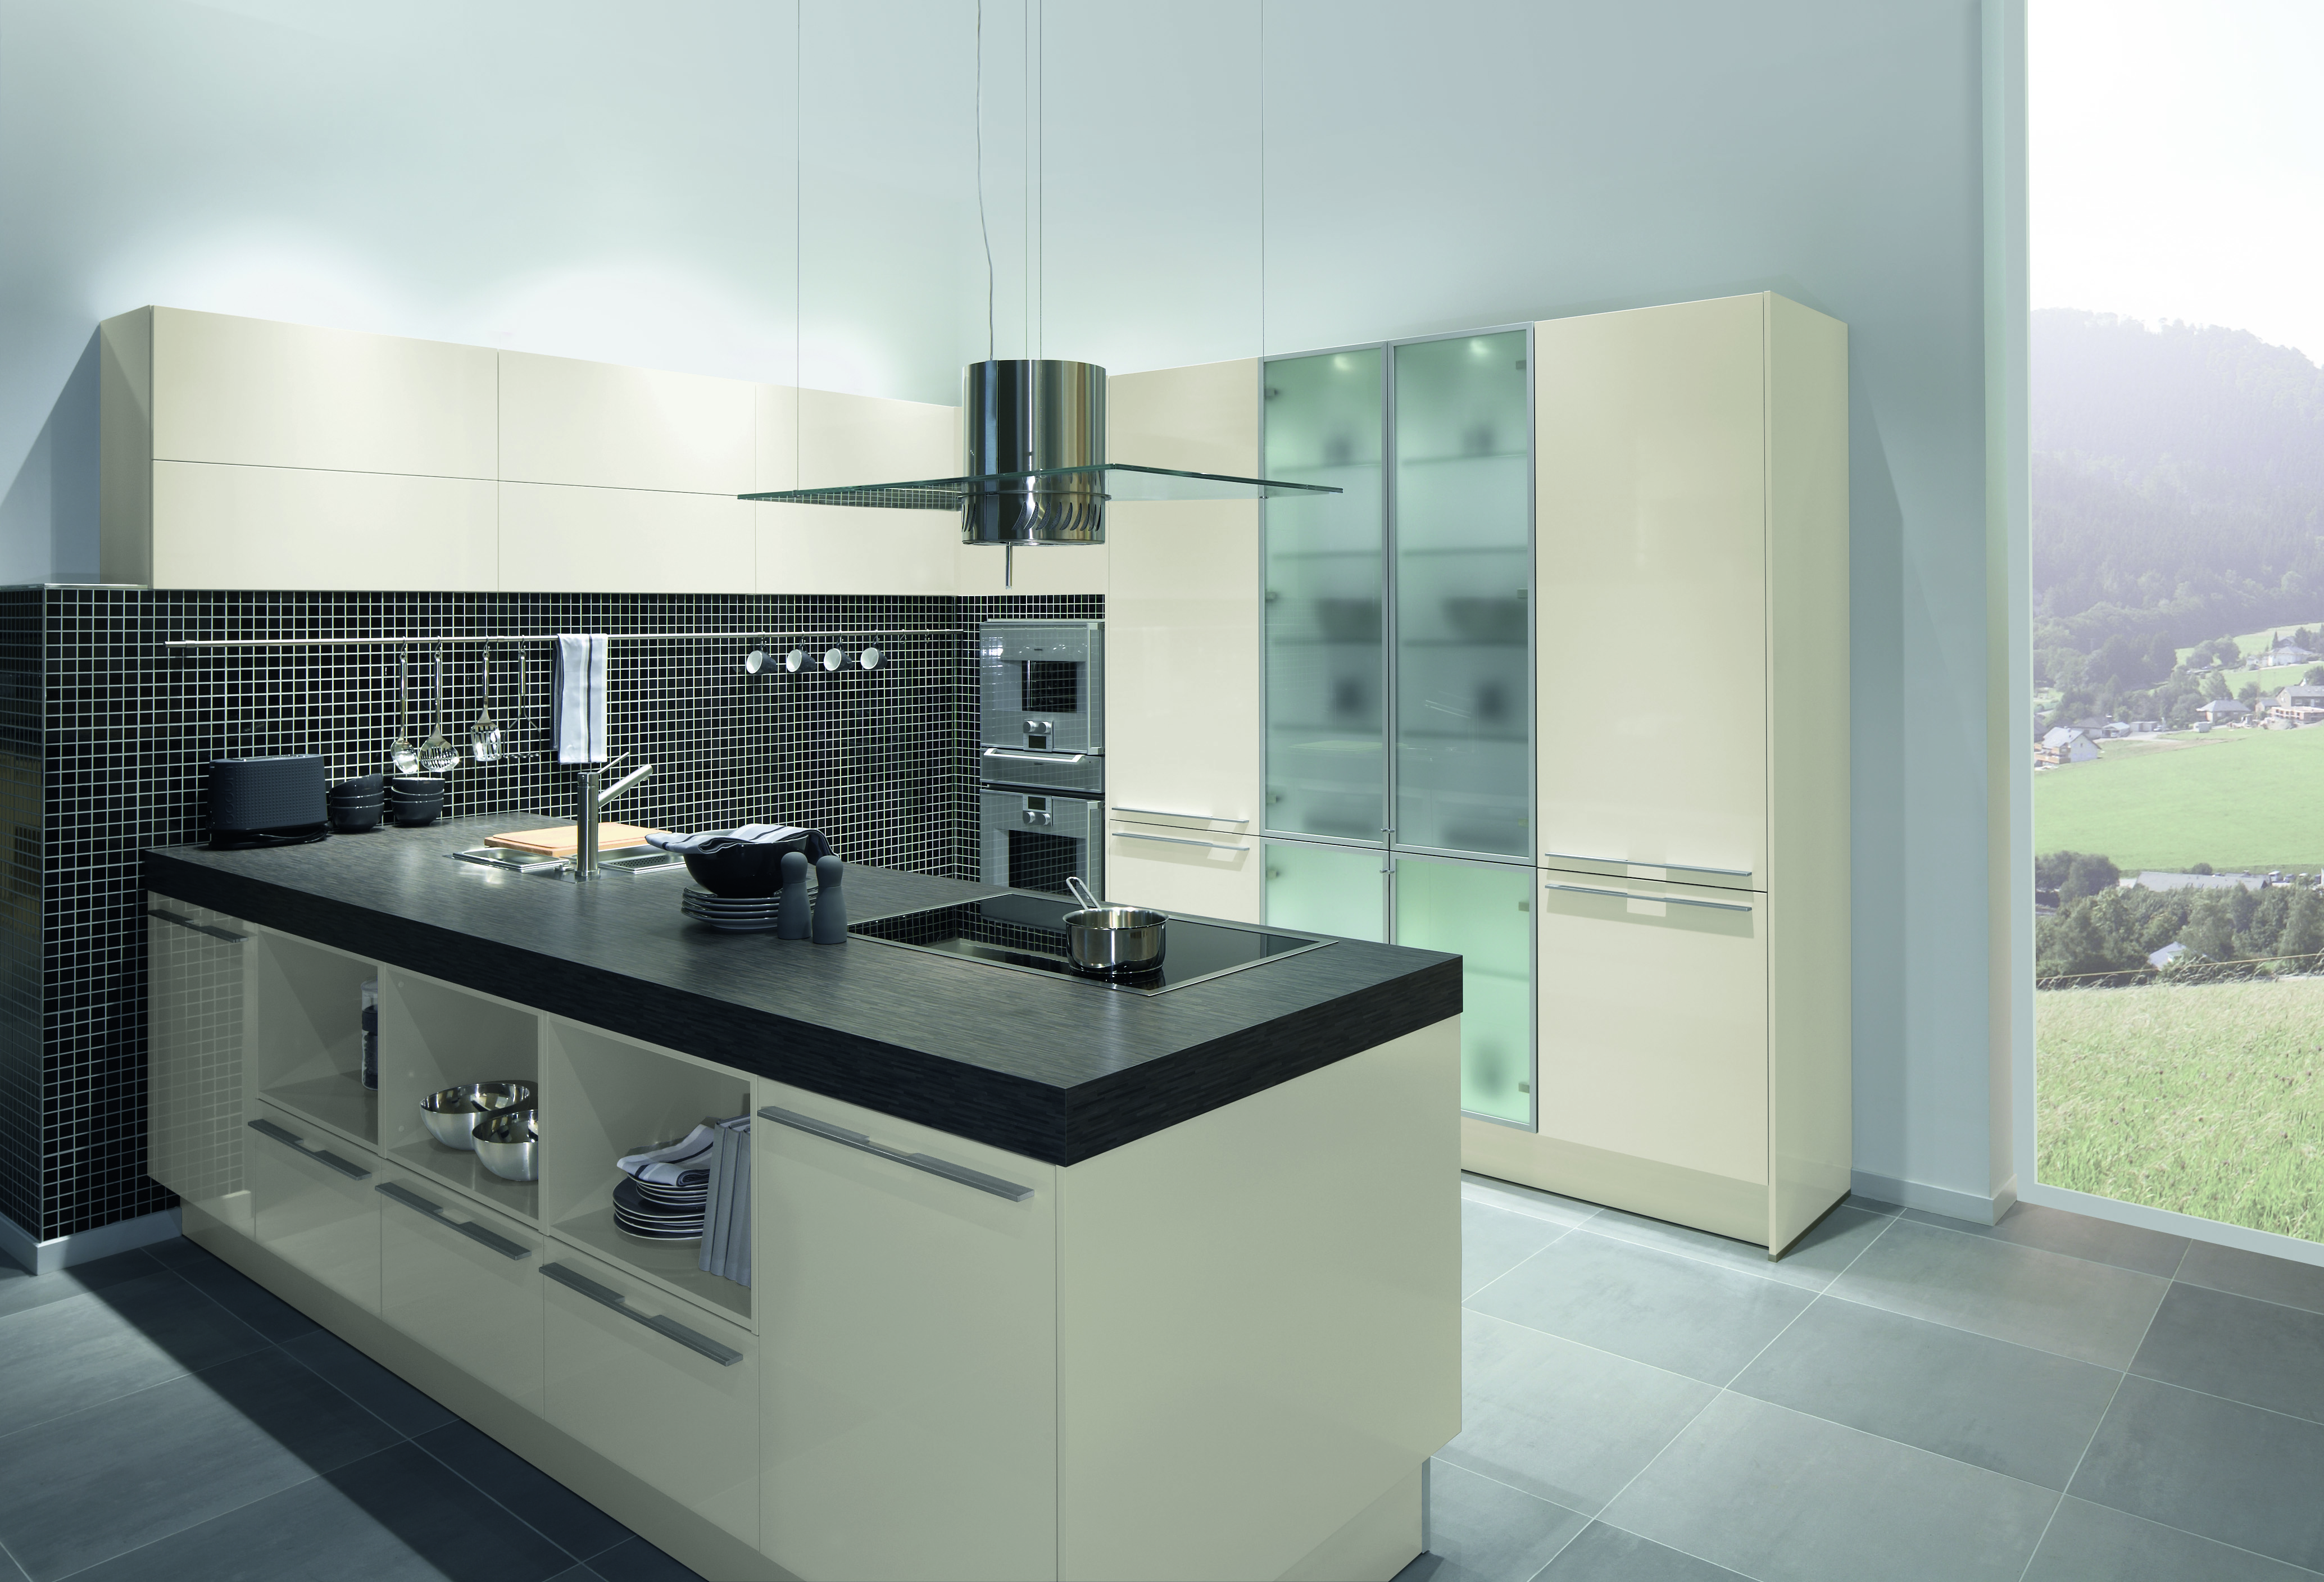 Pronorm_Kitchen_CL_SH-glanzkristall_002